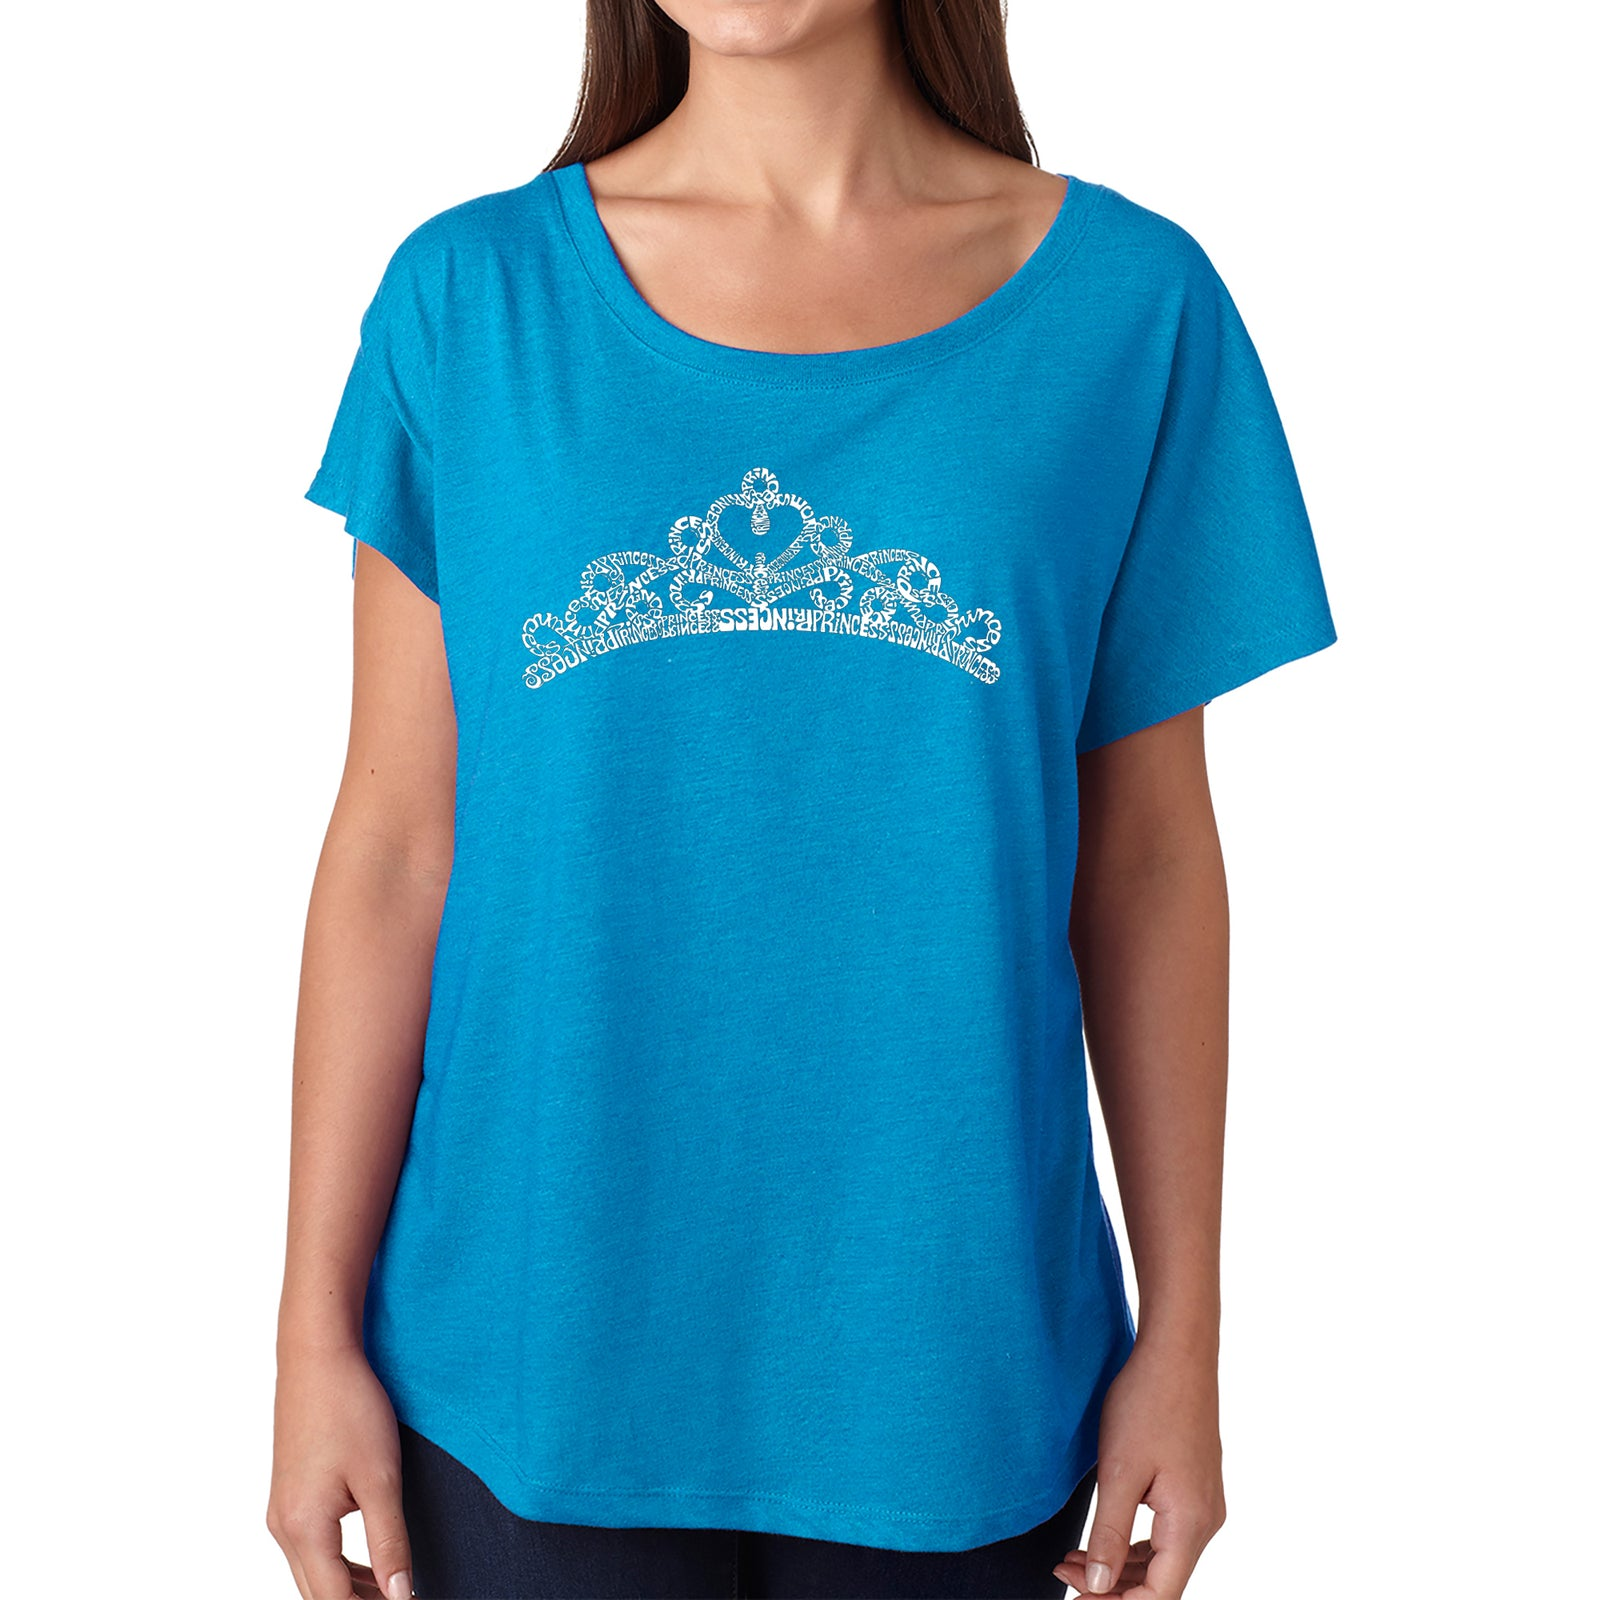 Women's Loose Fit Dolman Cut Word Art Shirt - Princess Tiara